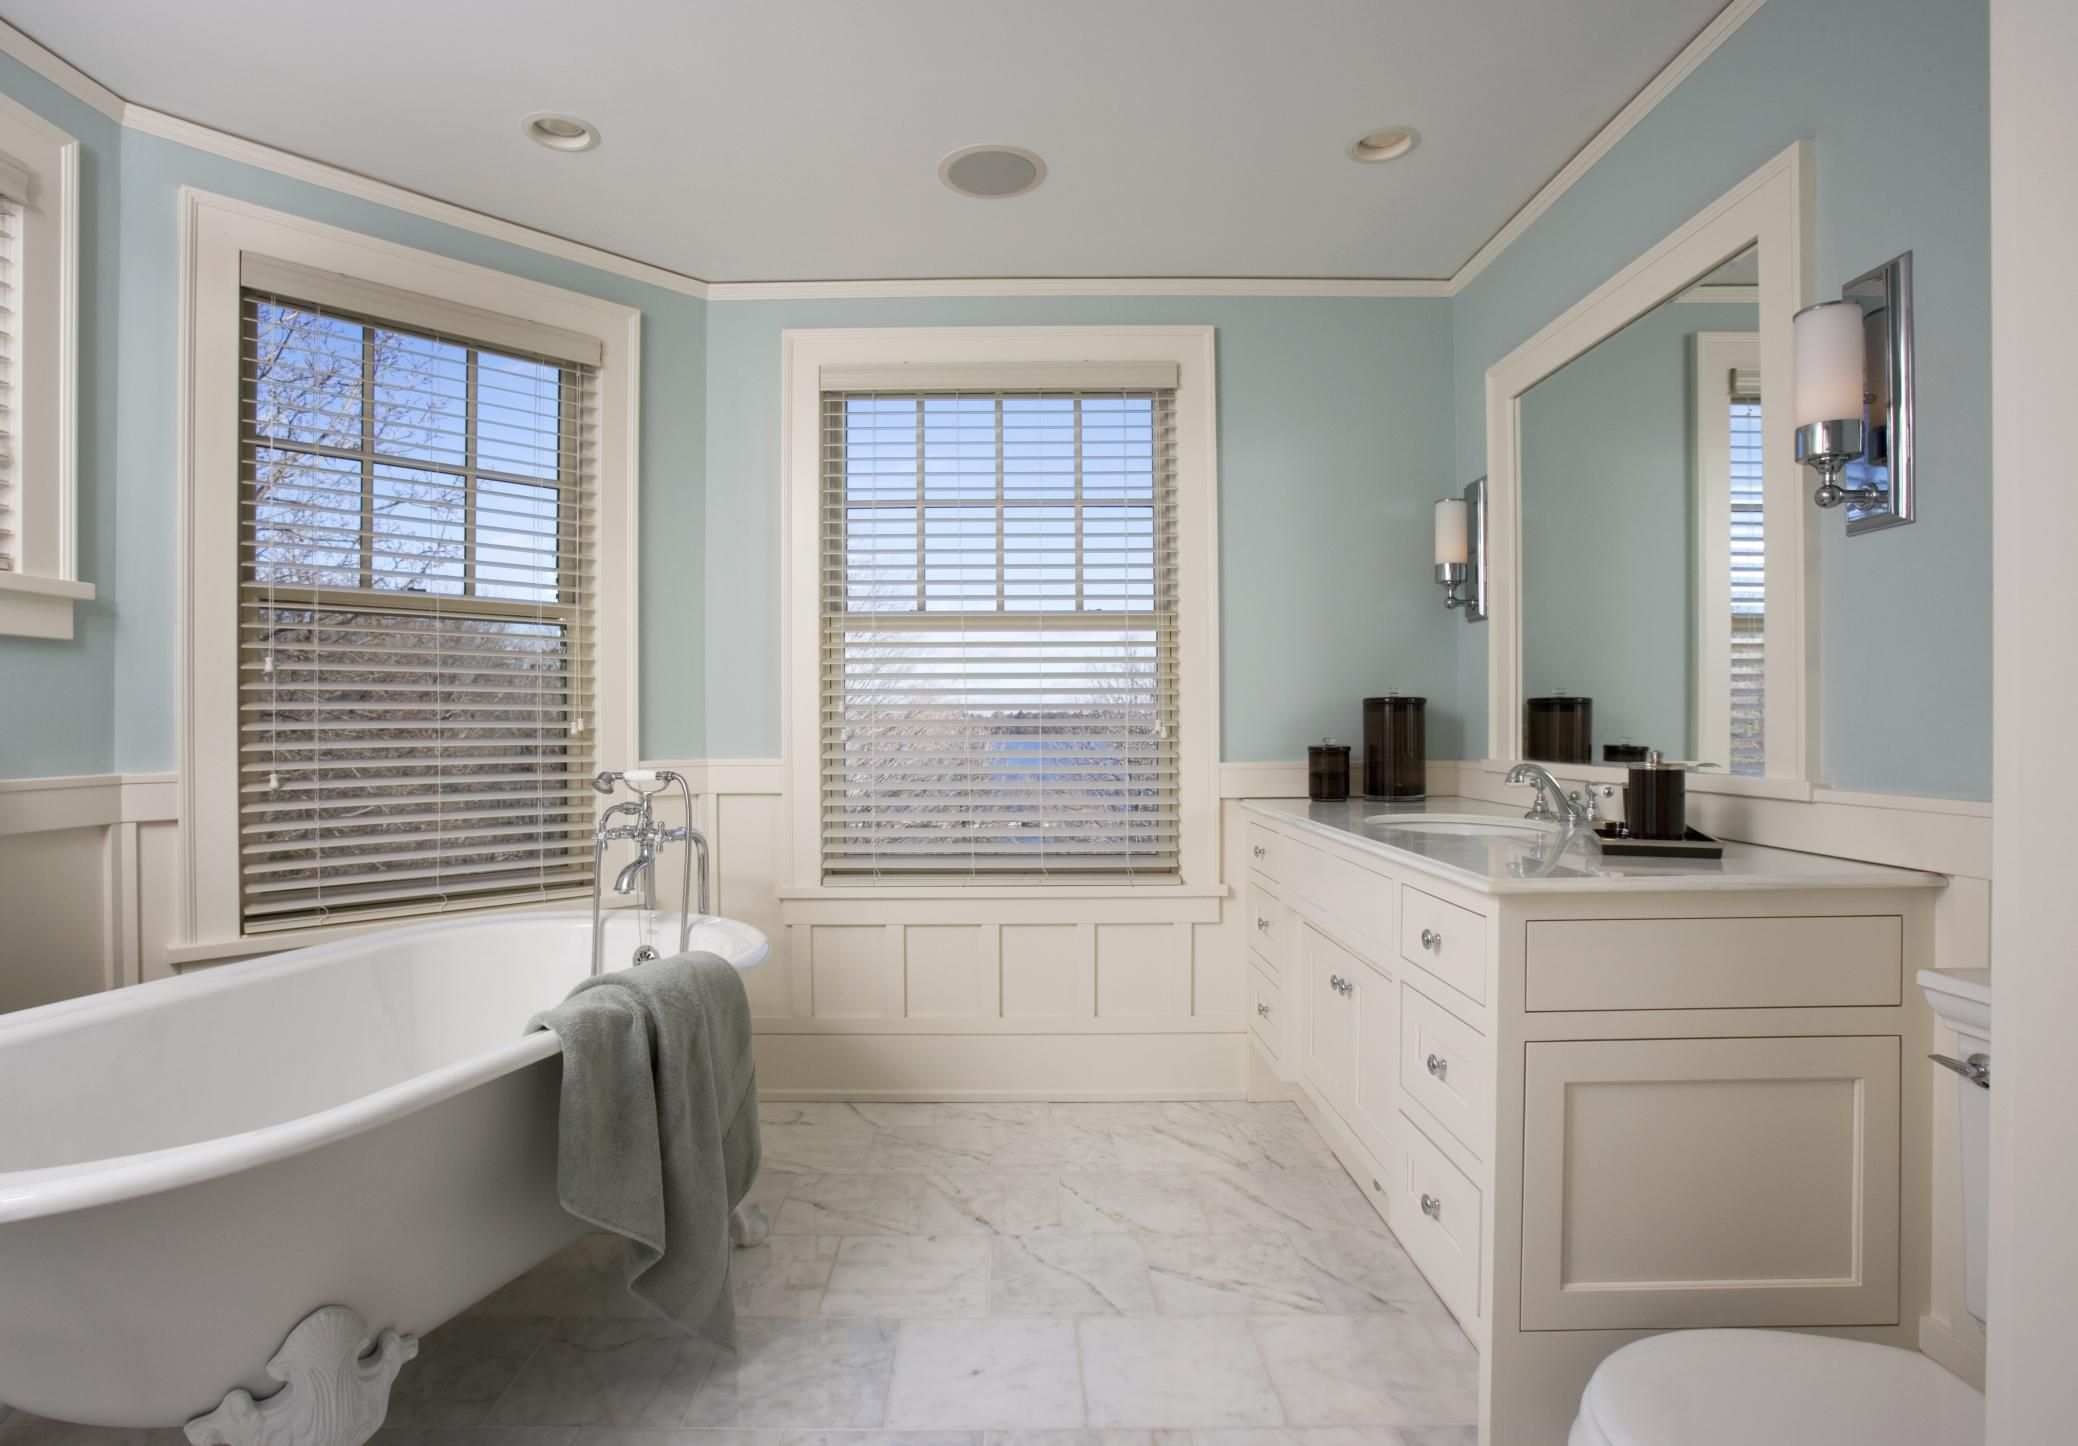 Bathroom Decorating Ideas For Small Bathrooms: Use These Bathroom Decorating Ideas For Your Home